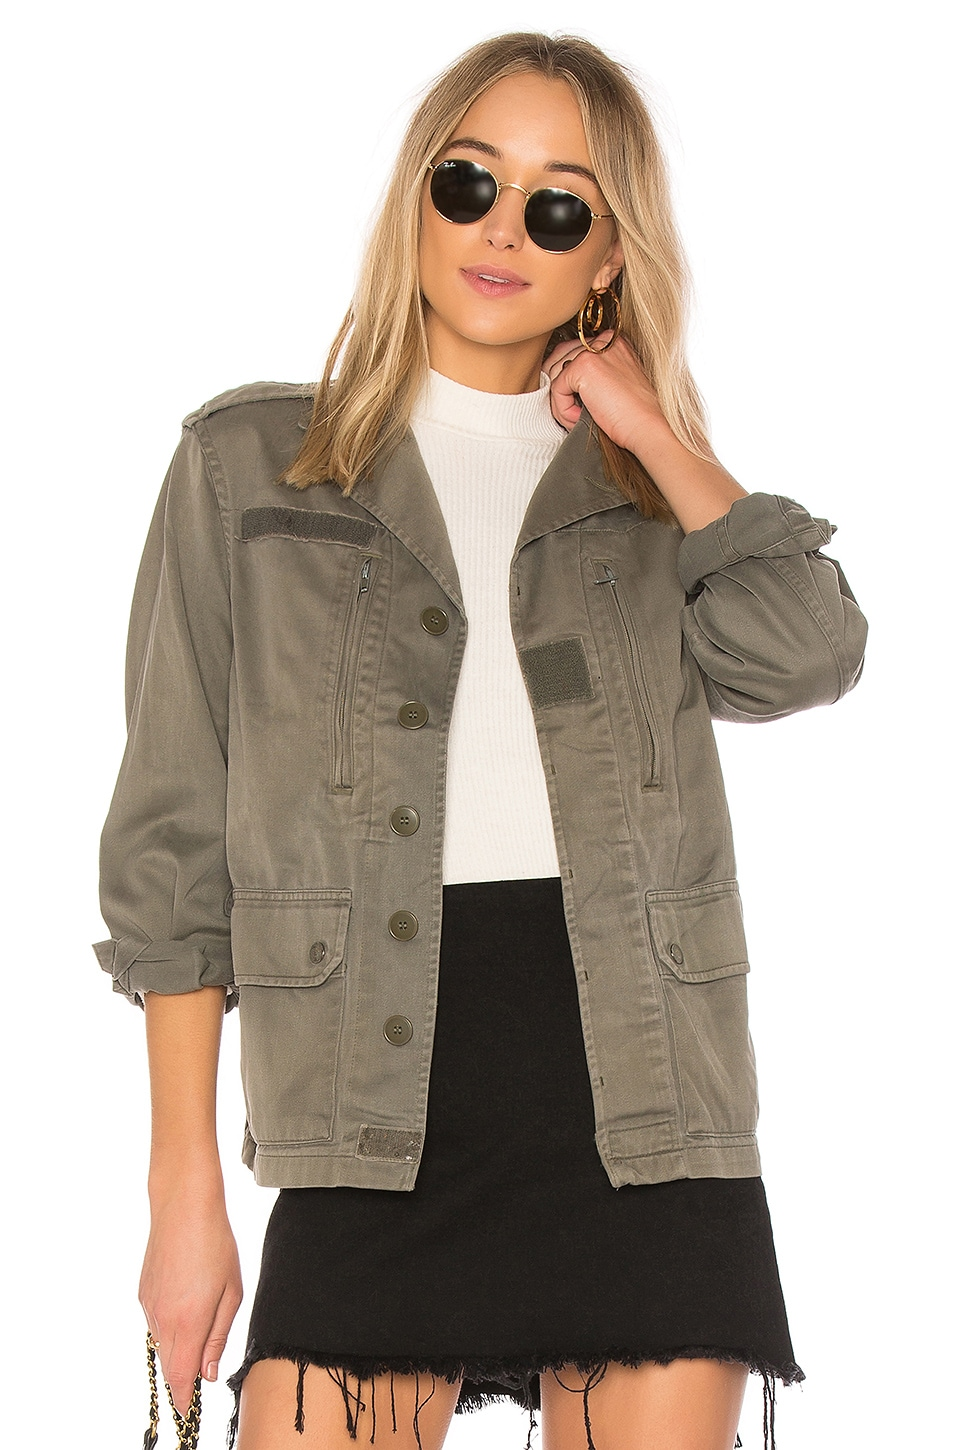 Army Jacket by Etienne Marcel